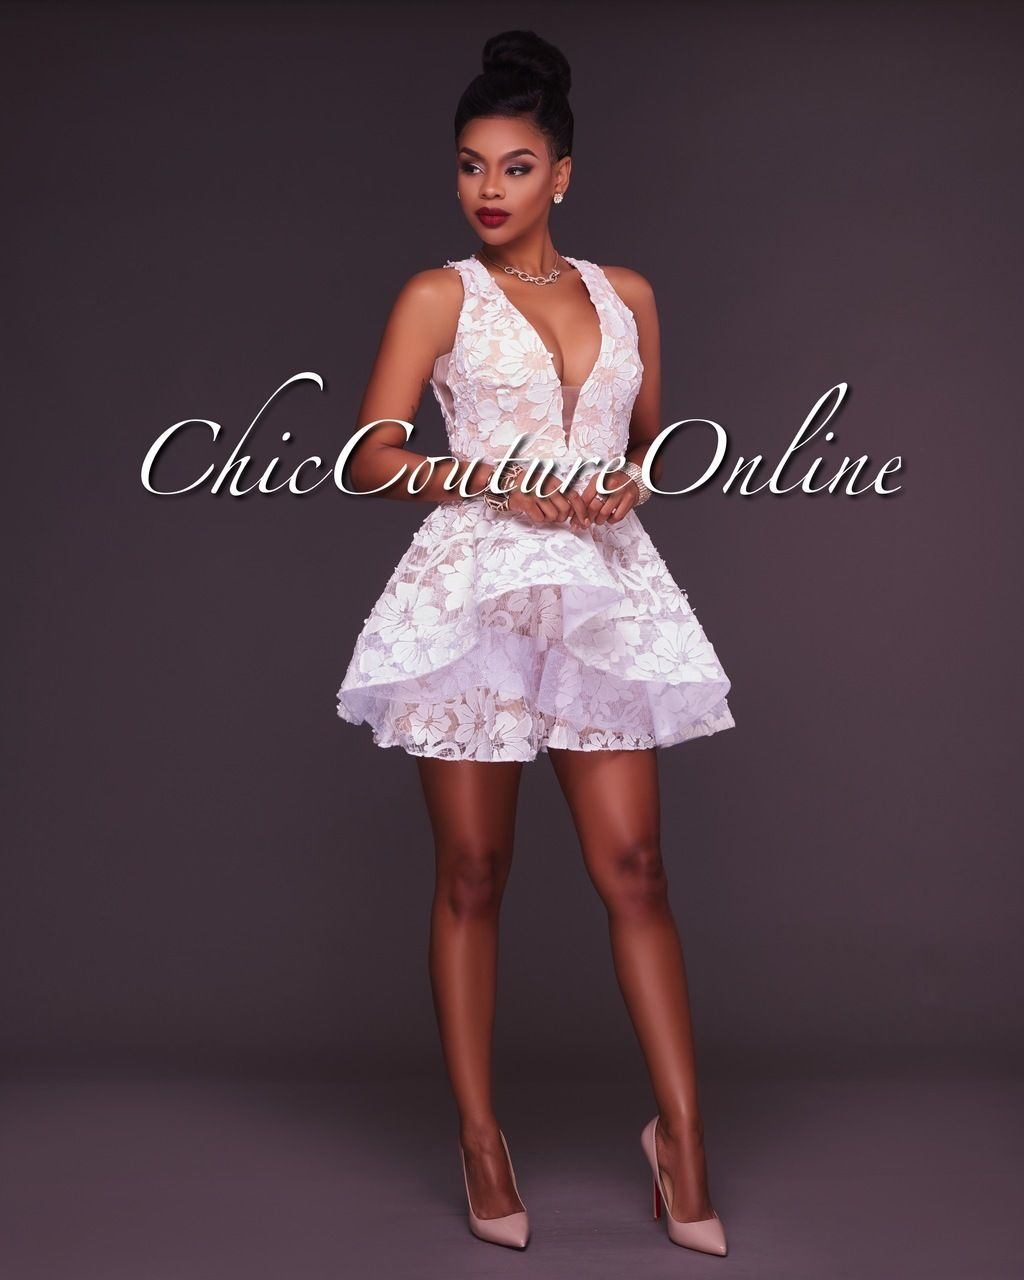 1c1970d903b4 Chic Couture Online - Blanche White Nude Lace Skater Dress, (http://